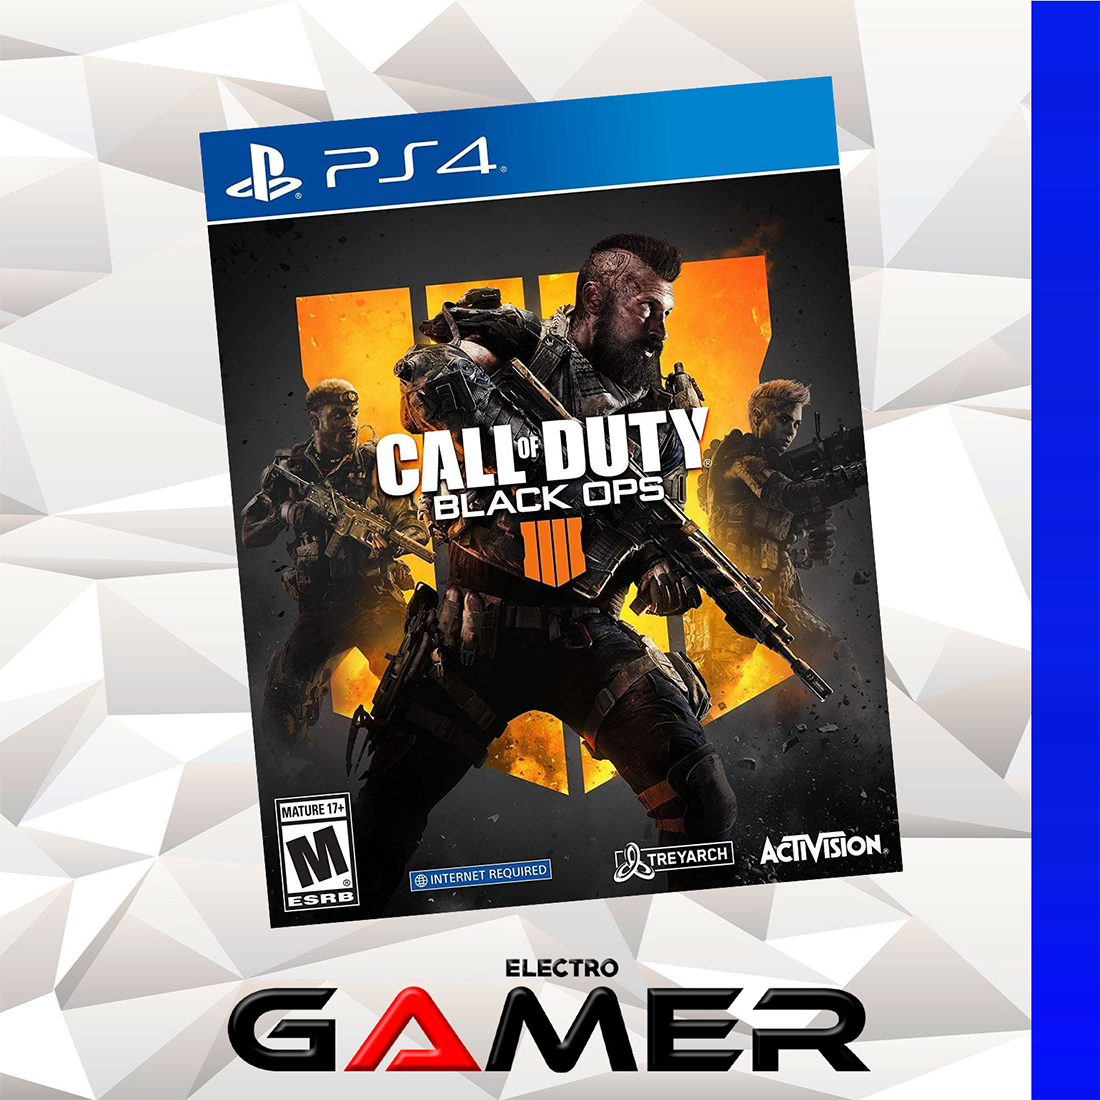 Ps4 Call Of Duty Black Ops 4 Standard Edition Ps4 Games Playstation 4 Games Buy Online At Best Prices In Pakistan Daraz Pk